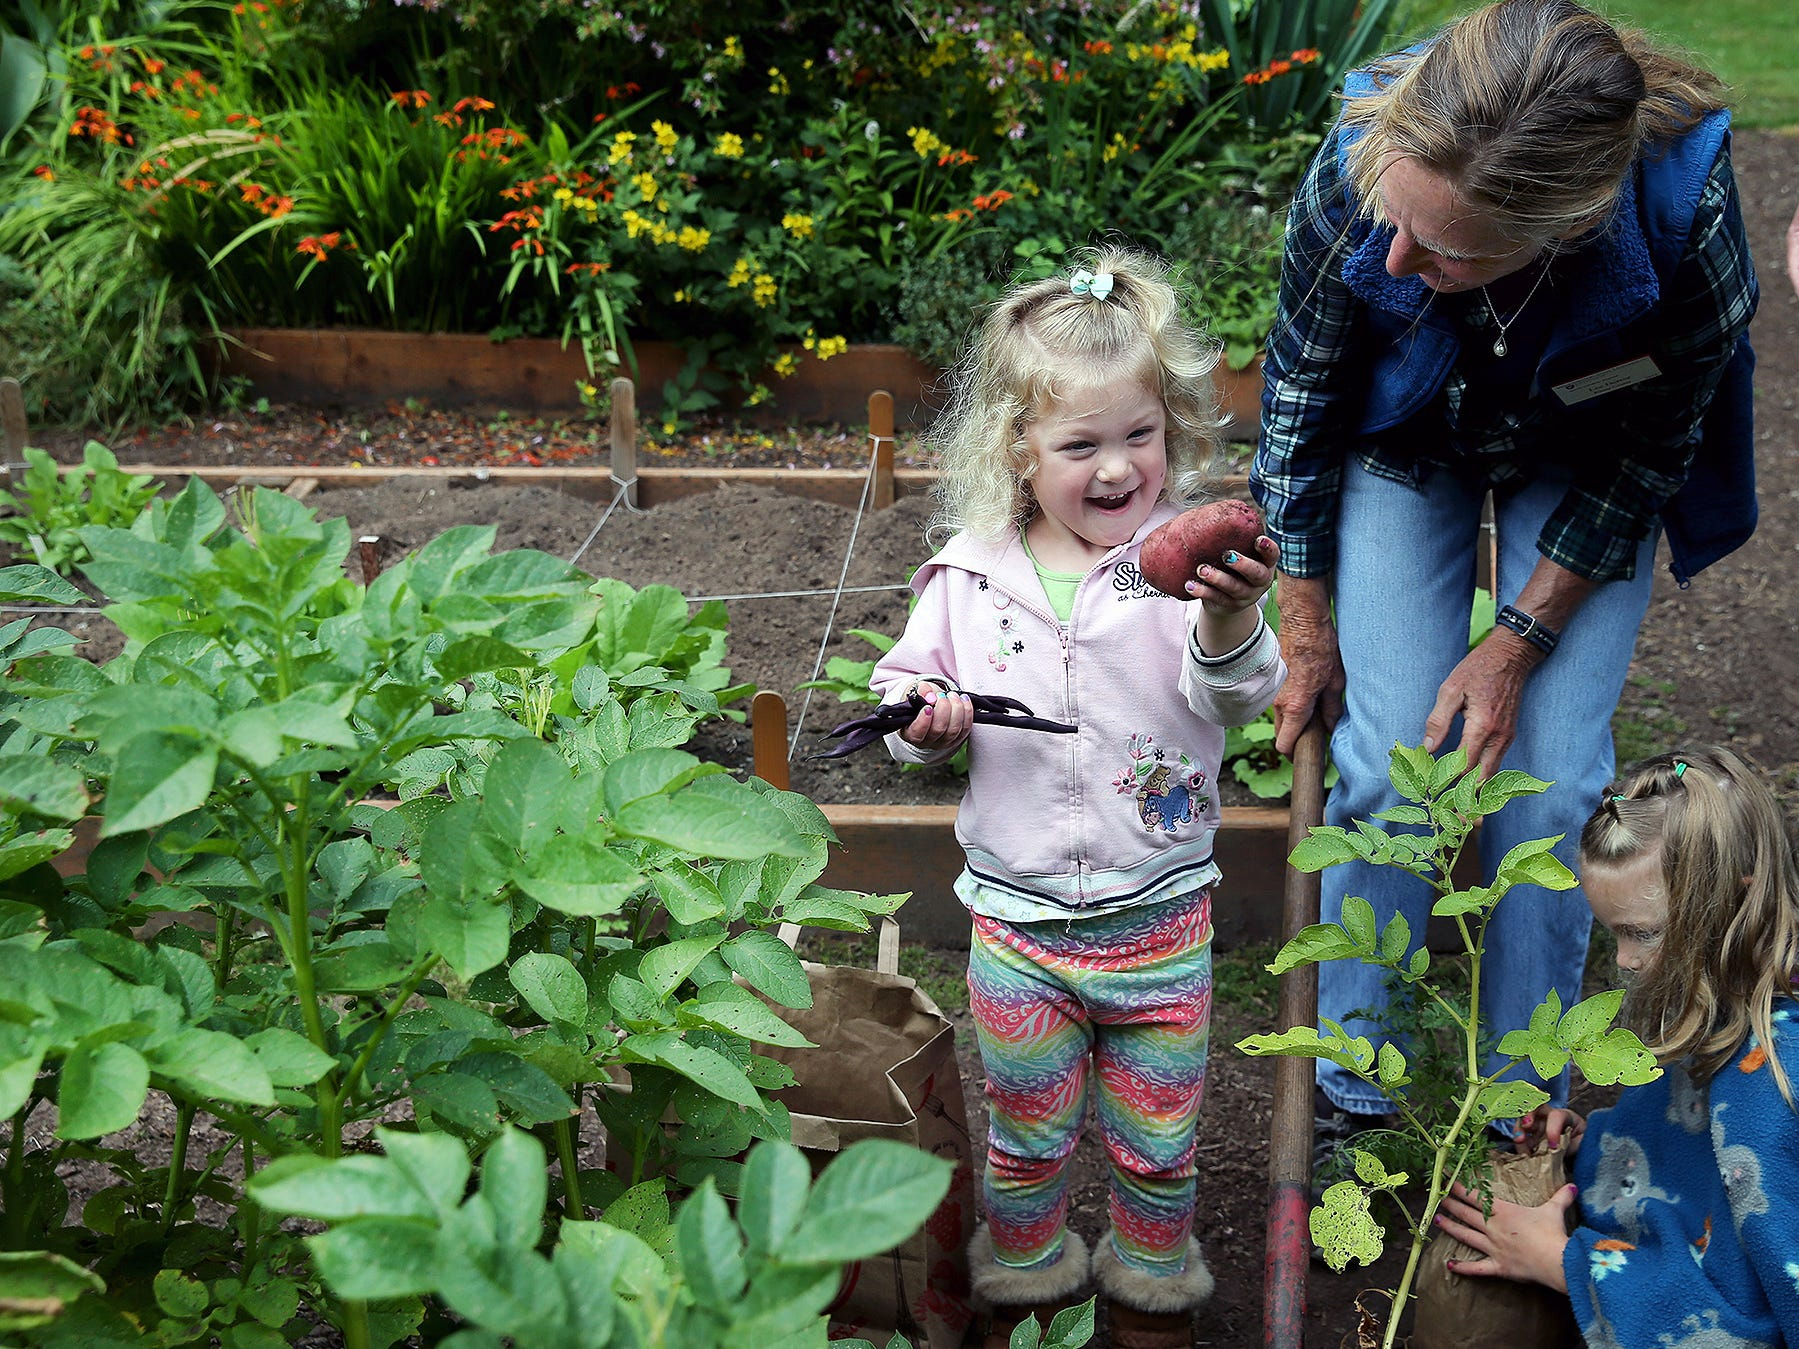 Emily Moss, 3, is amazed that she found a potato in the garden at the Anna Smith Garden on Saturday, August 4, 2018. Master Gardeners from the WSU Extension were there to answer questions and help children. On the right is WSU Master Gardener Lee Derror.